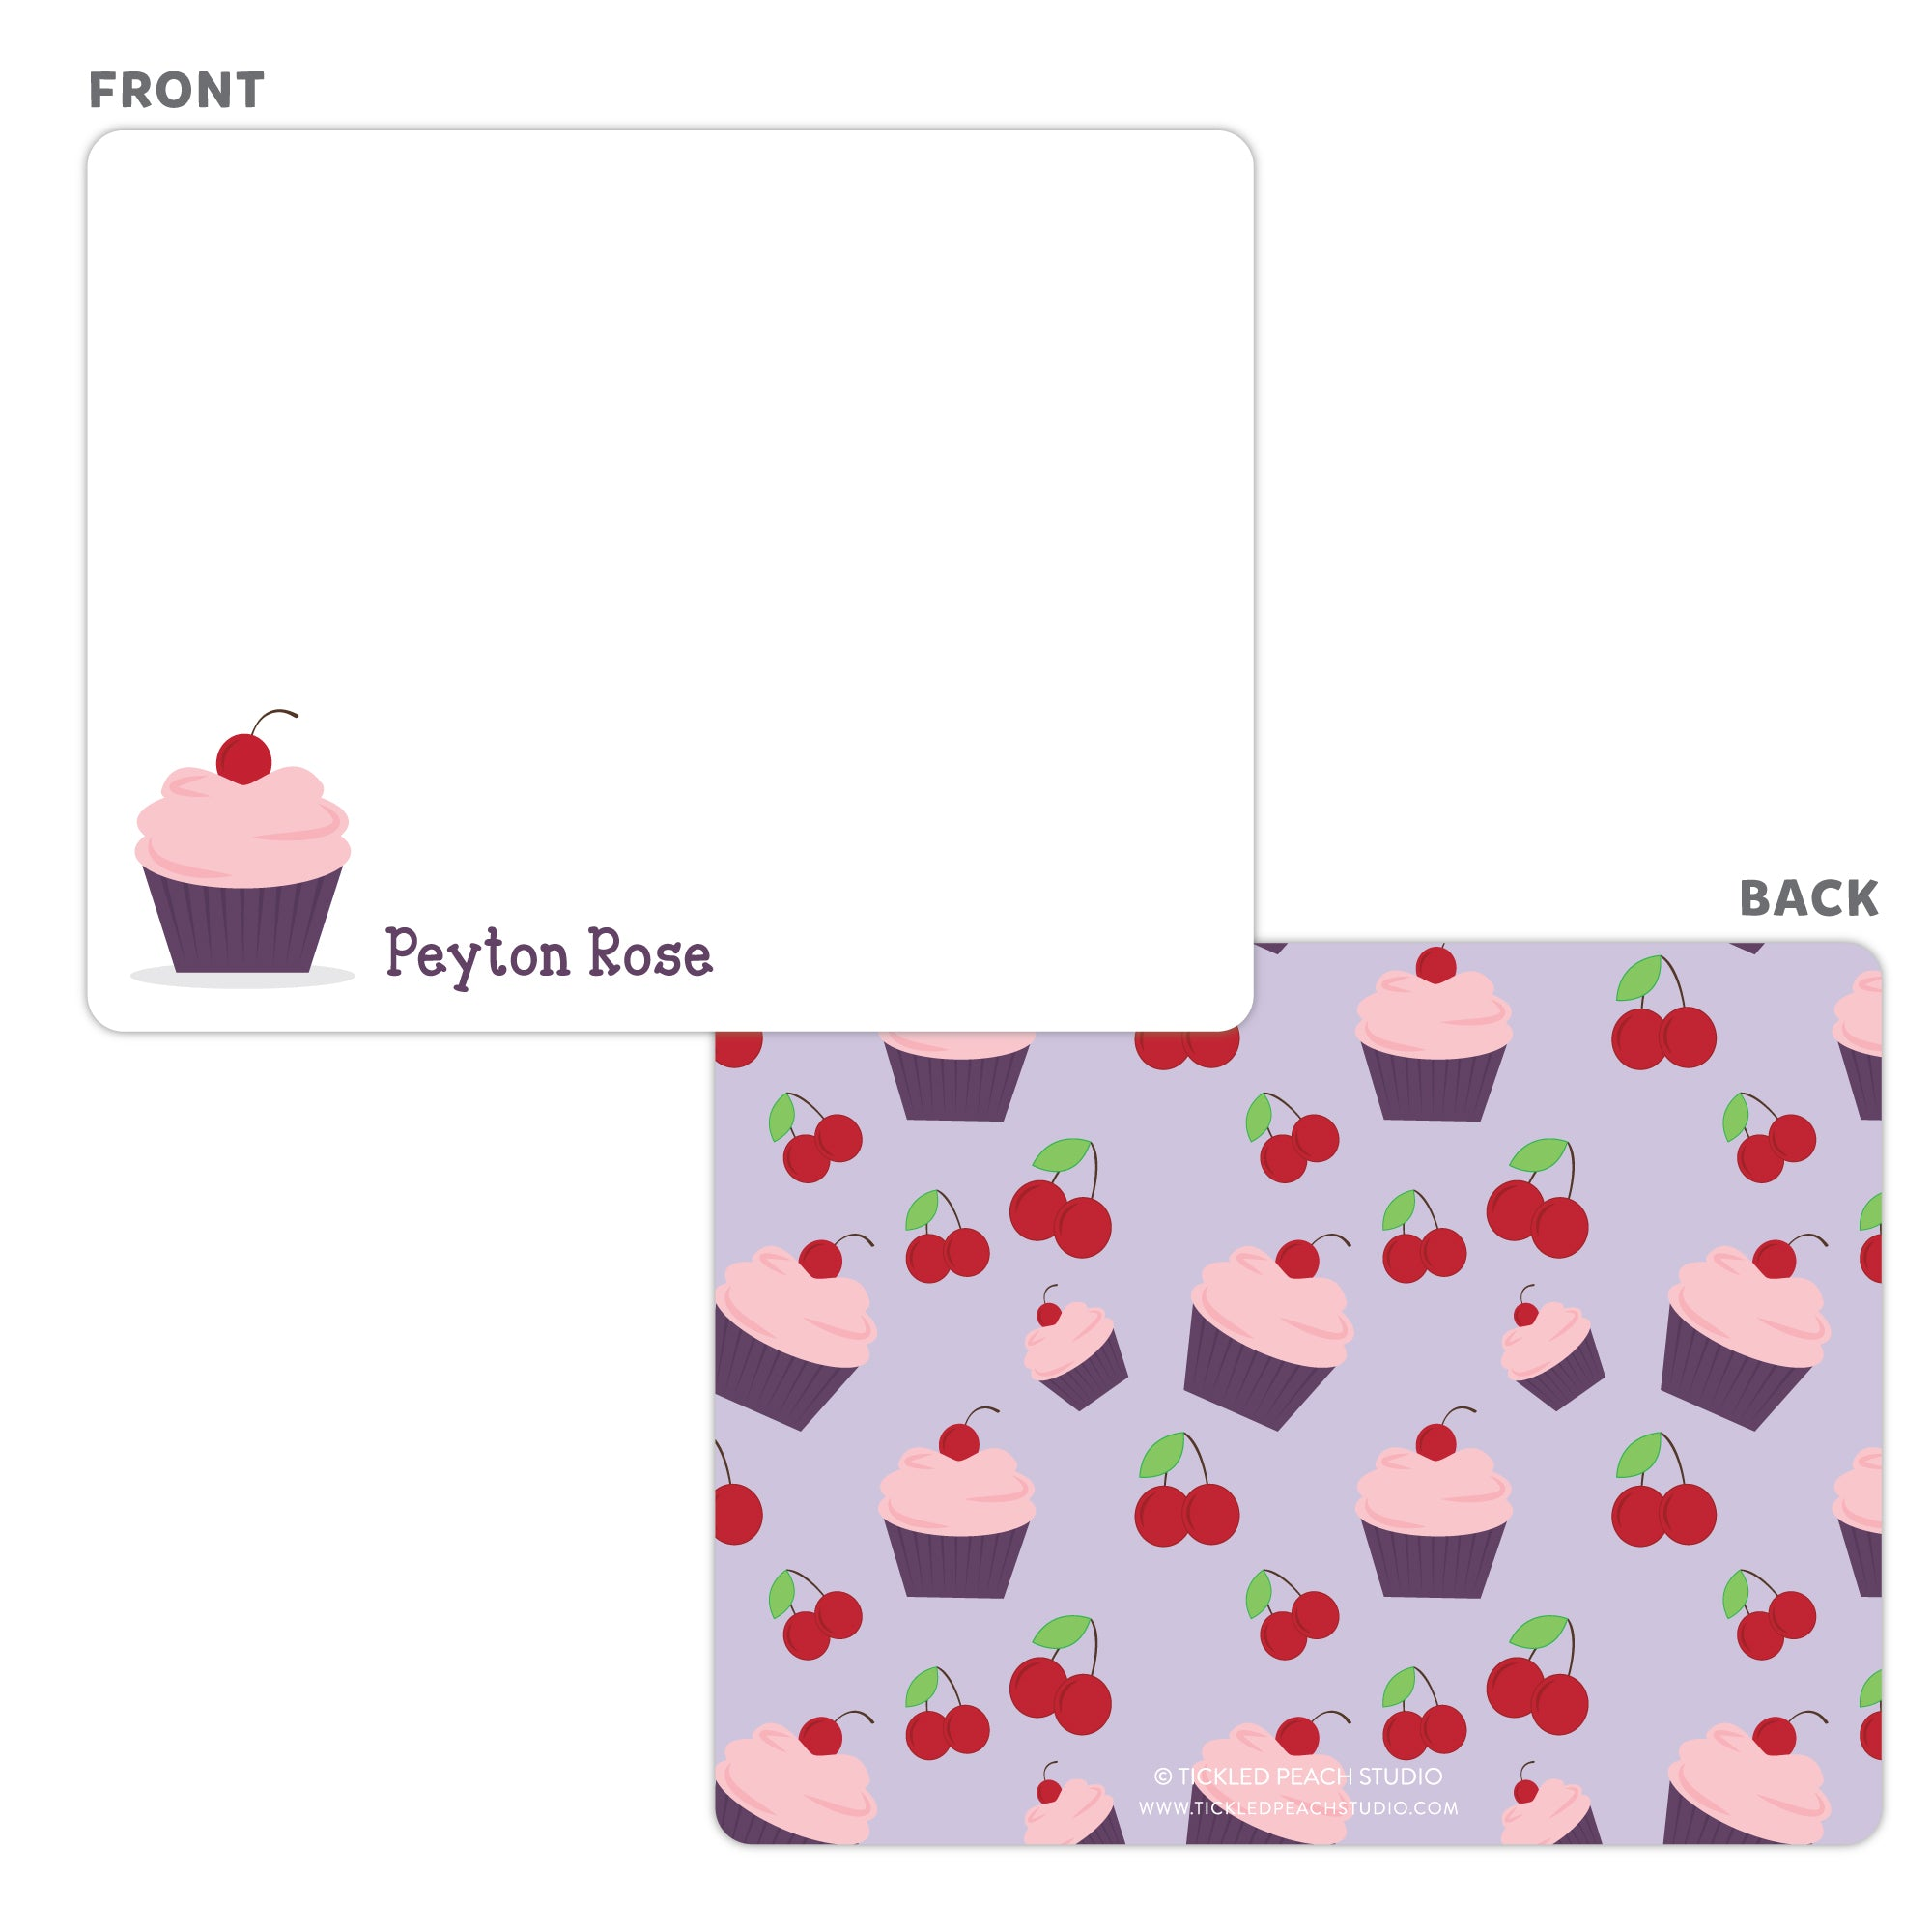 Cupcake Note Cards - Thank You Cards